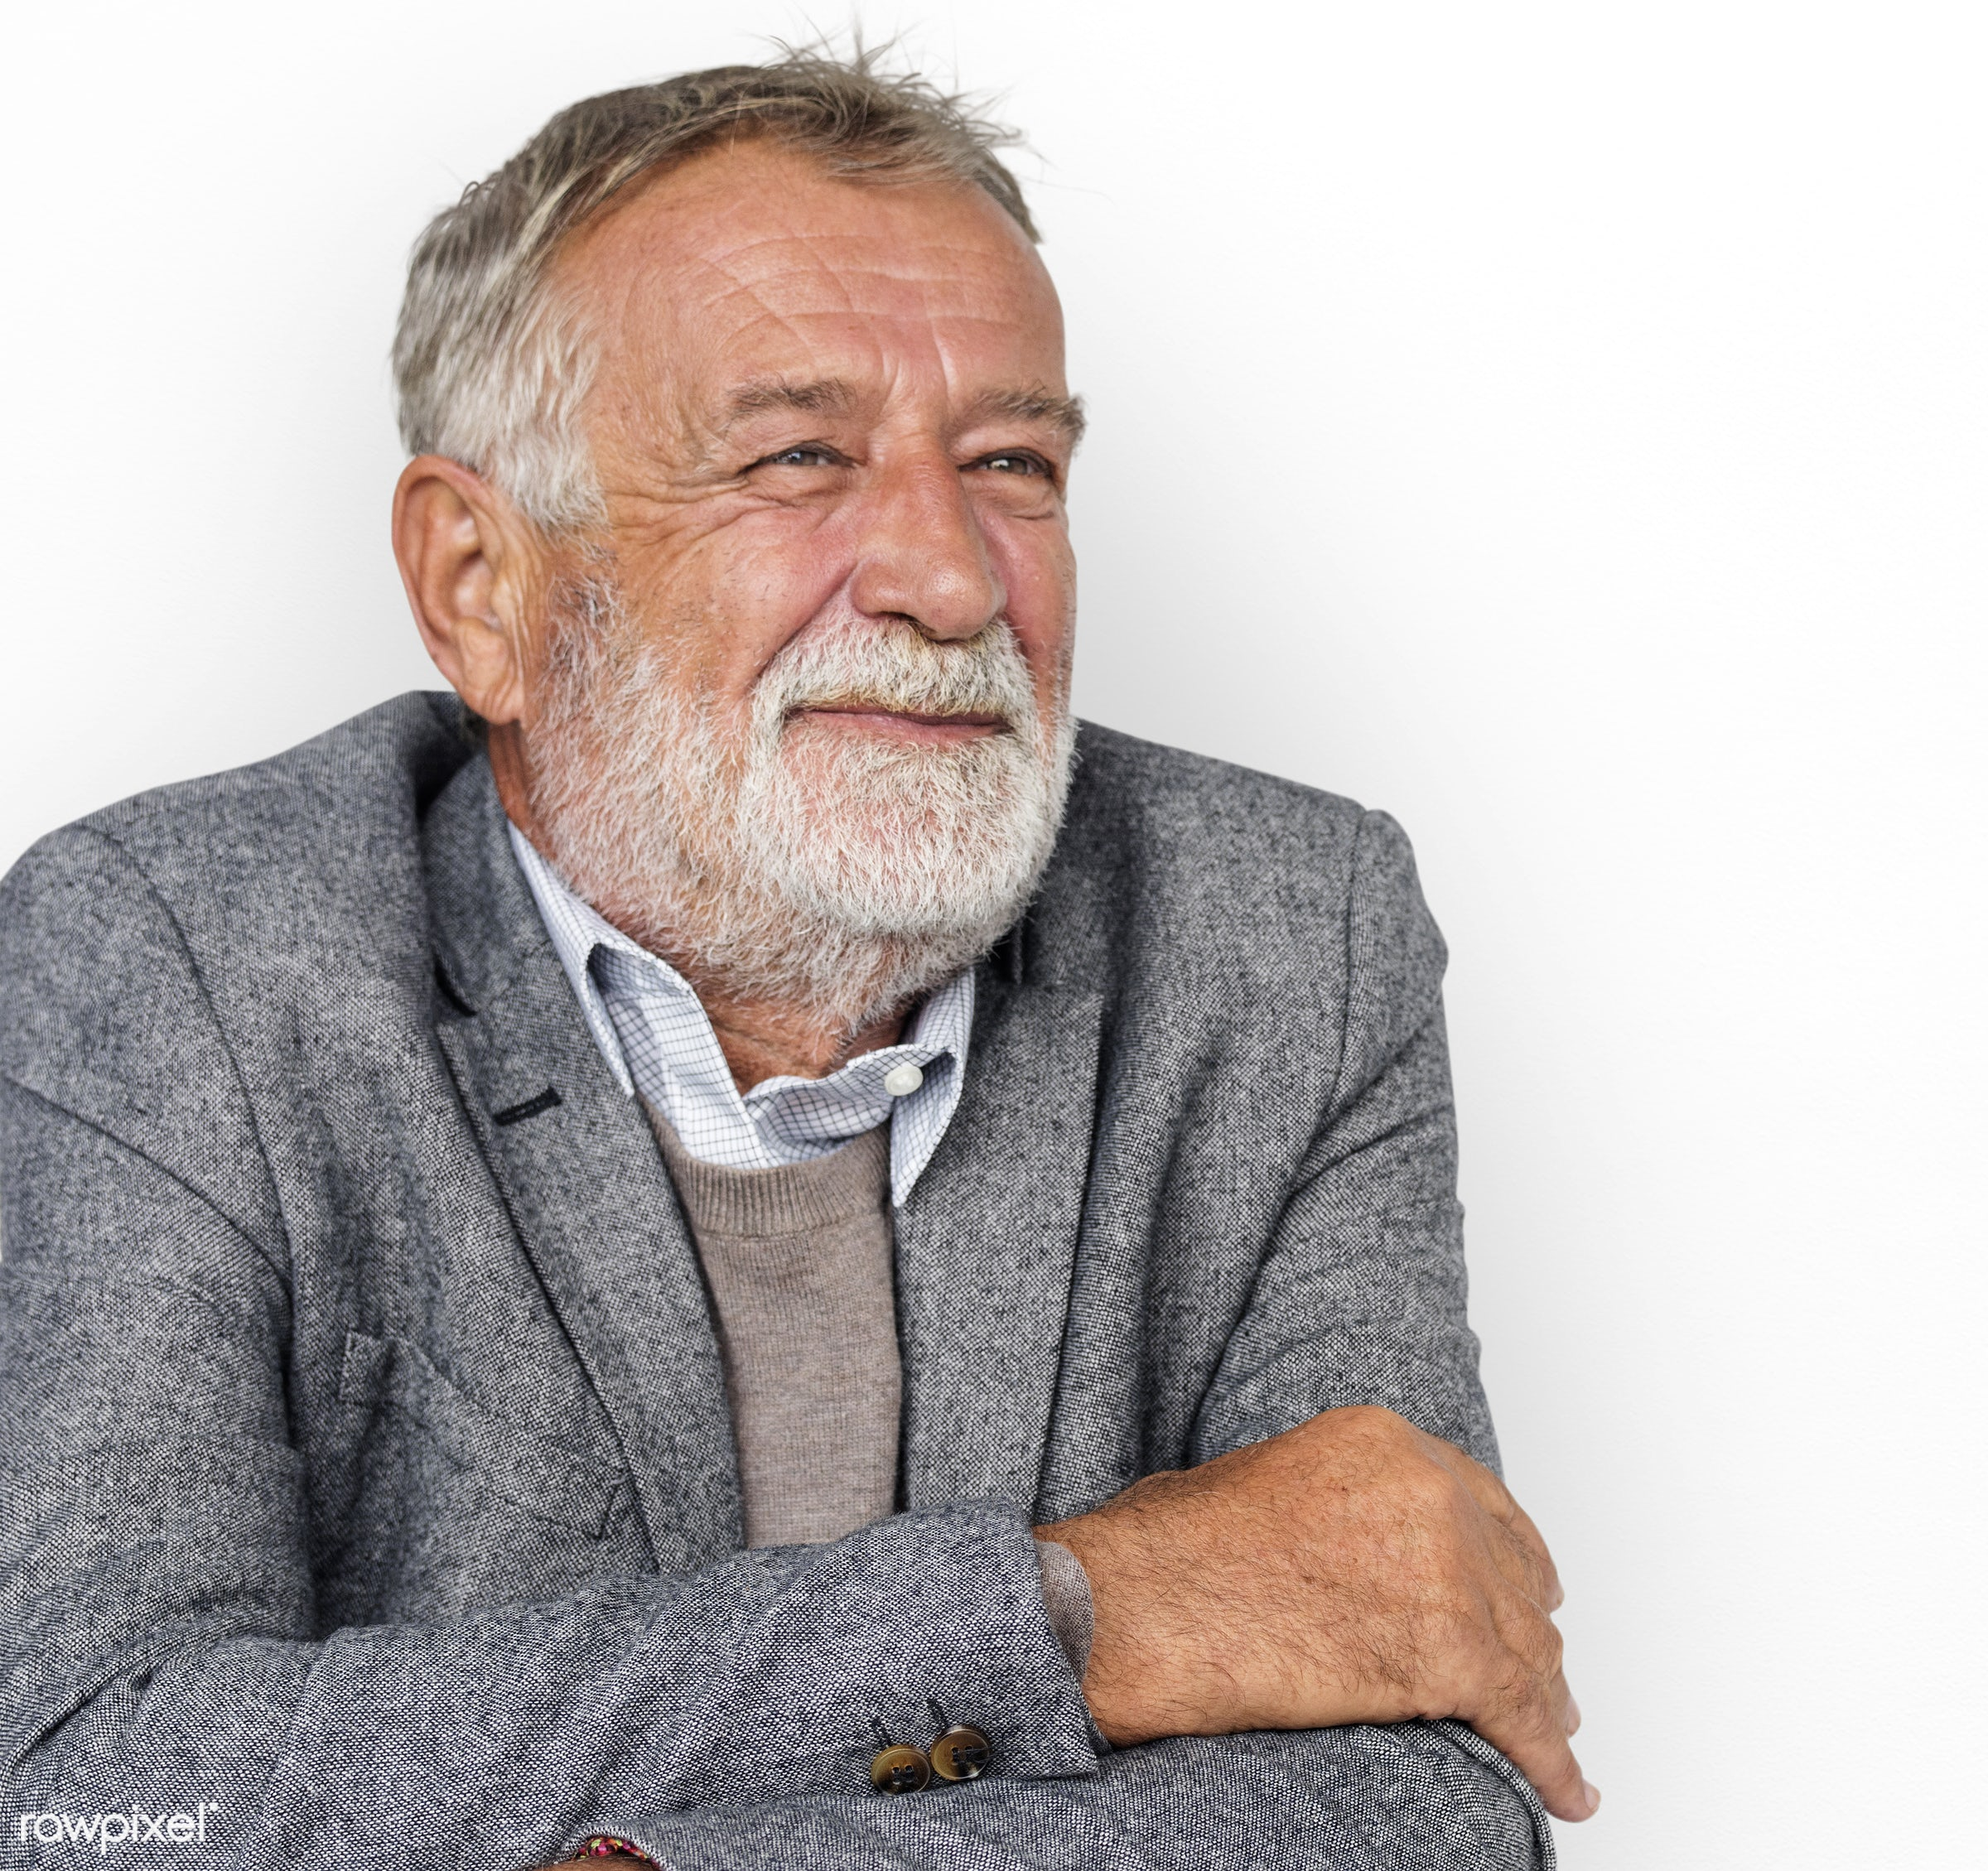 studio, expression, person, old, people, caucasian, smile, cheerful, smiling, isolated, business man, white, mood, happiness...